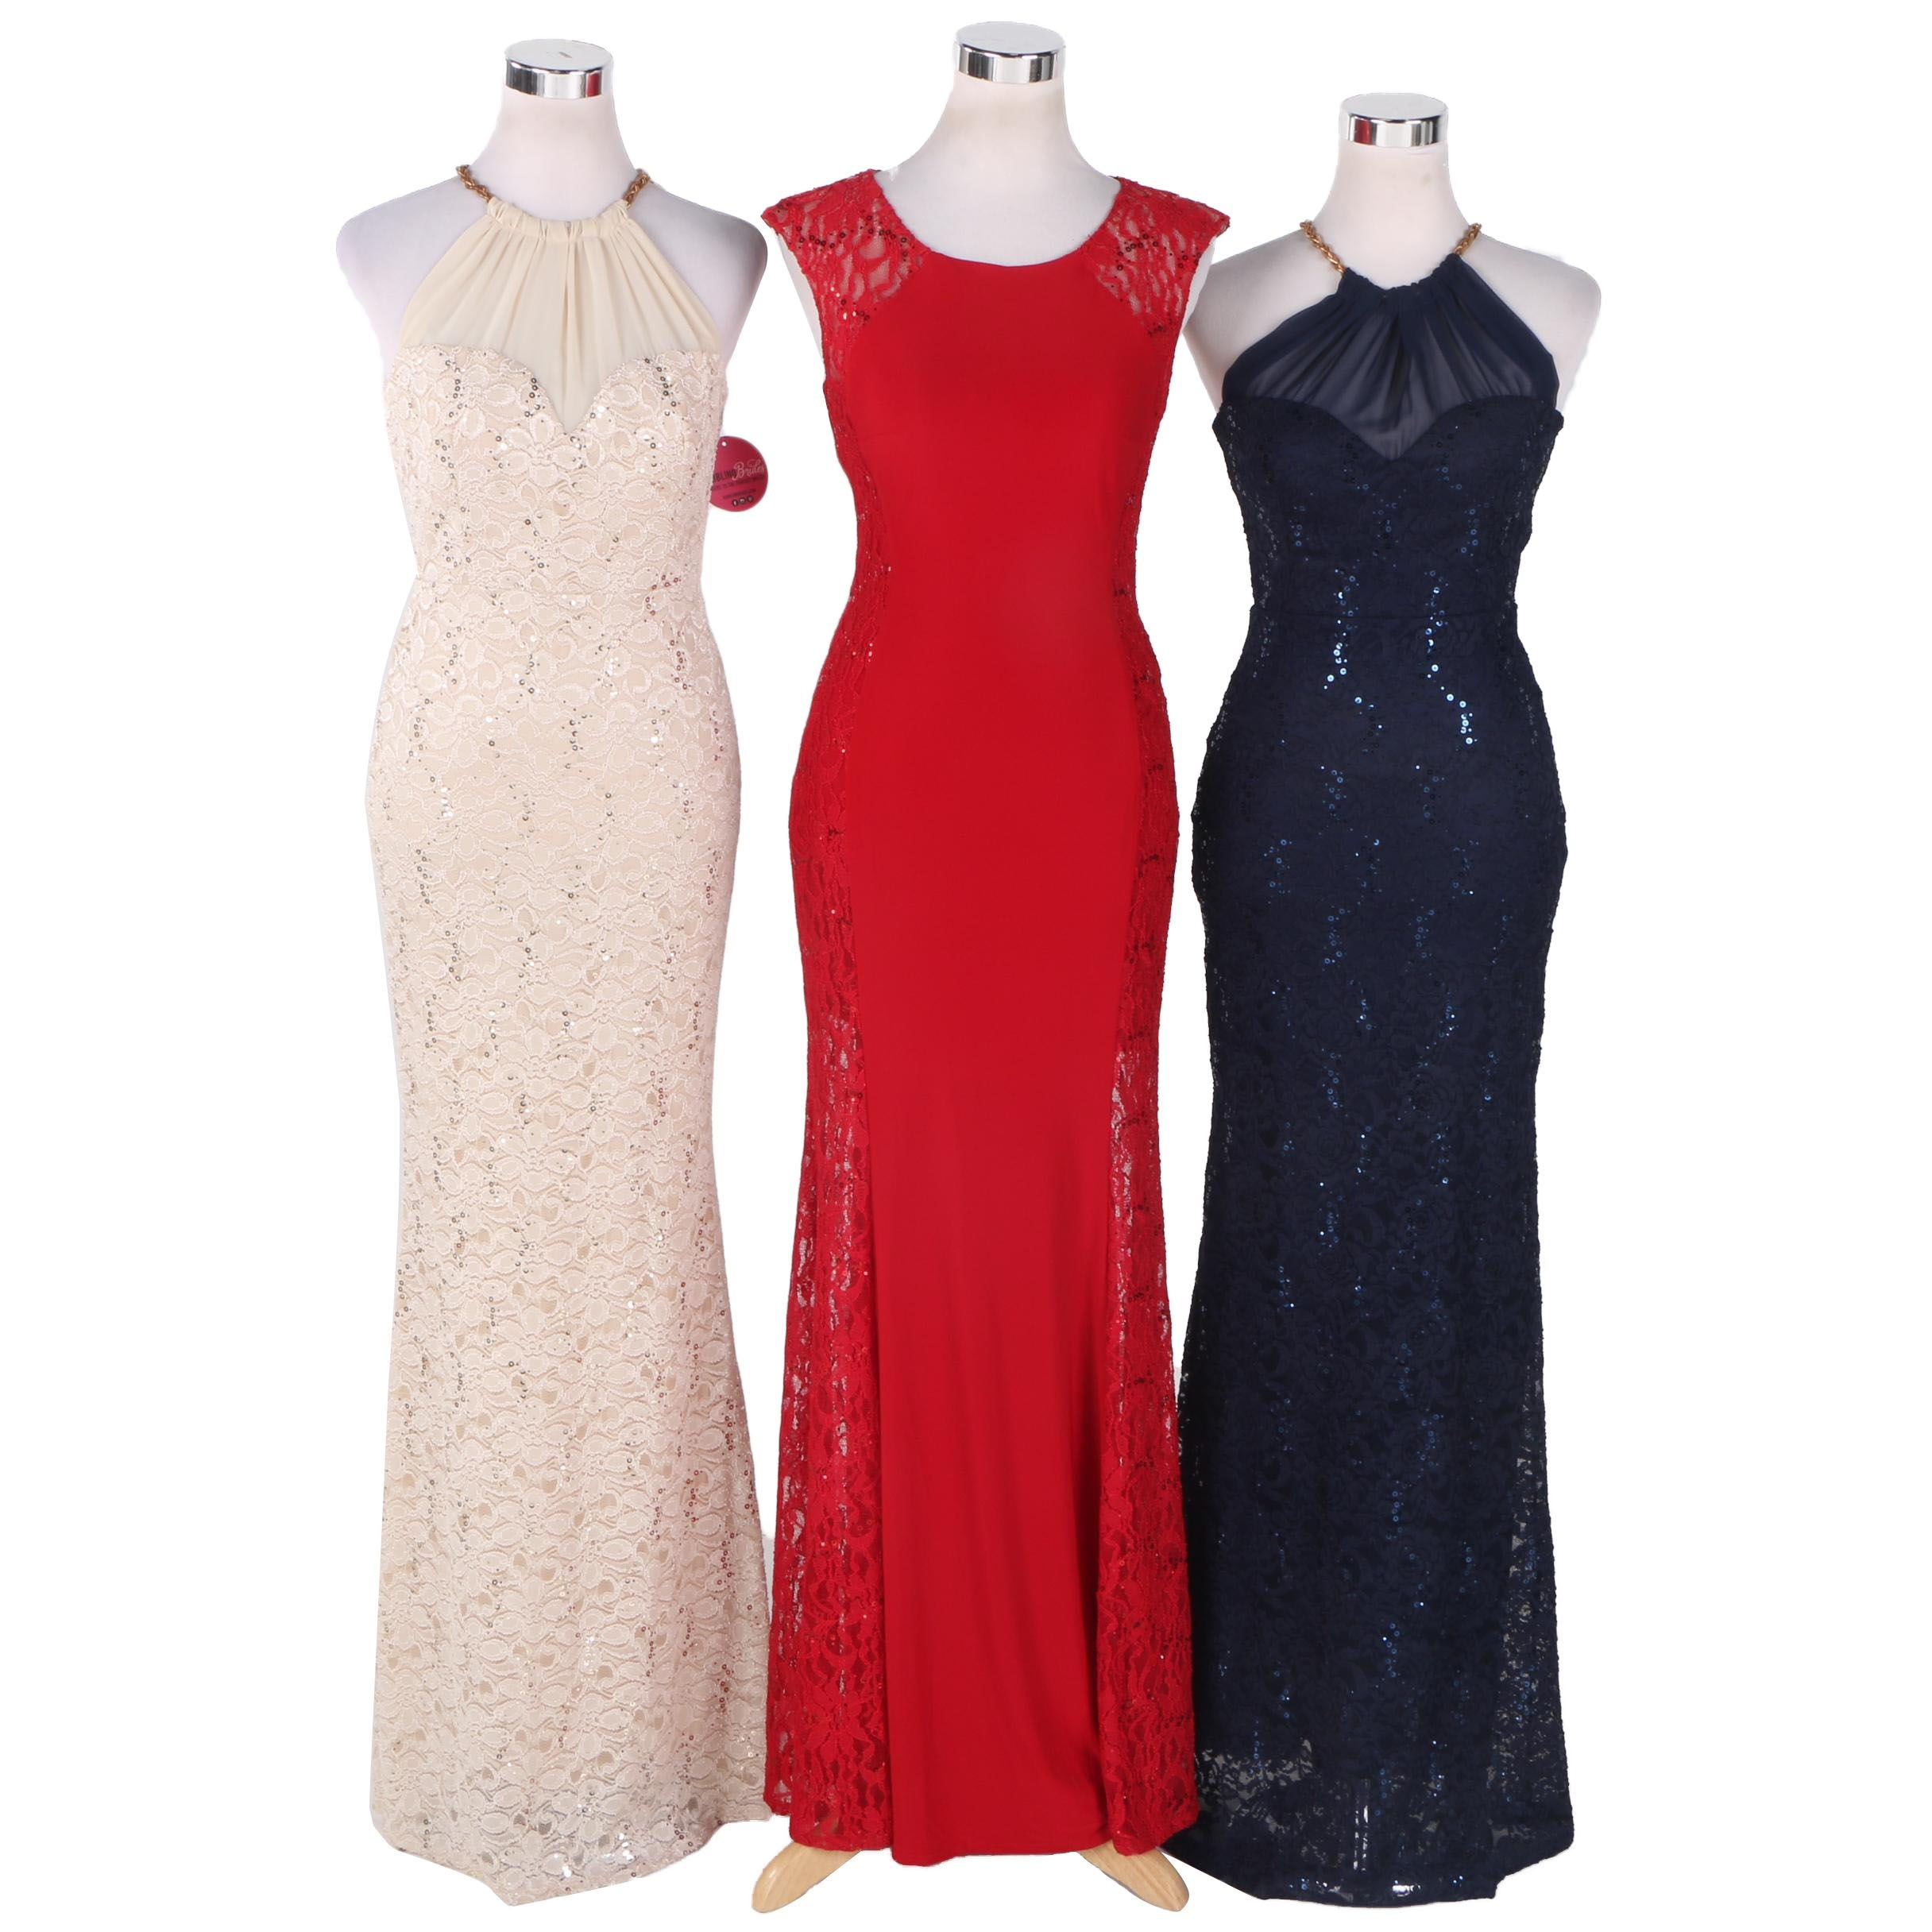 Three Women's Evening Dresses Including Maria Christina